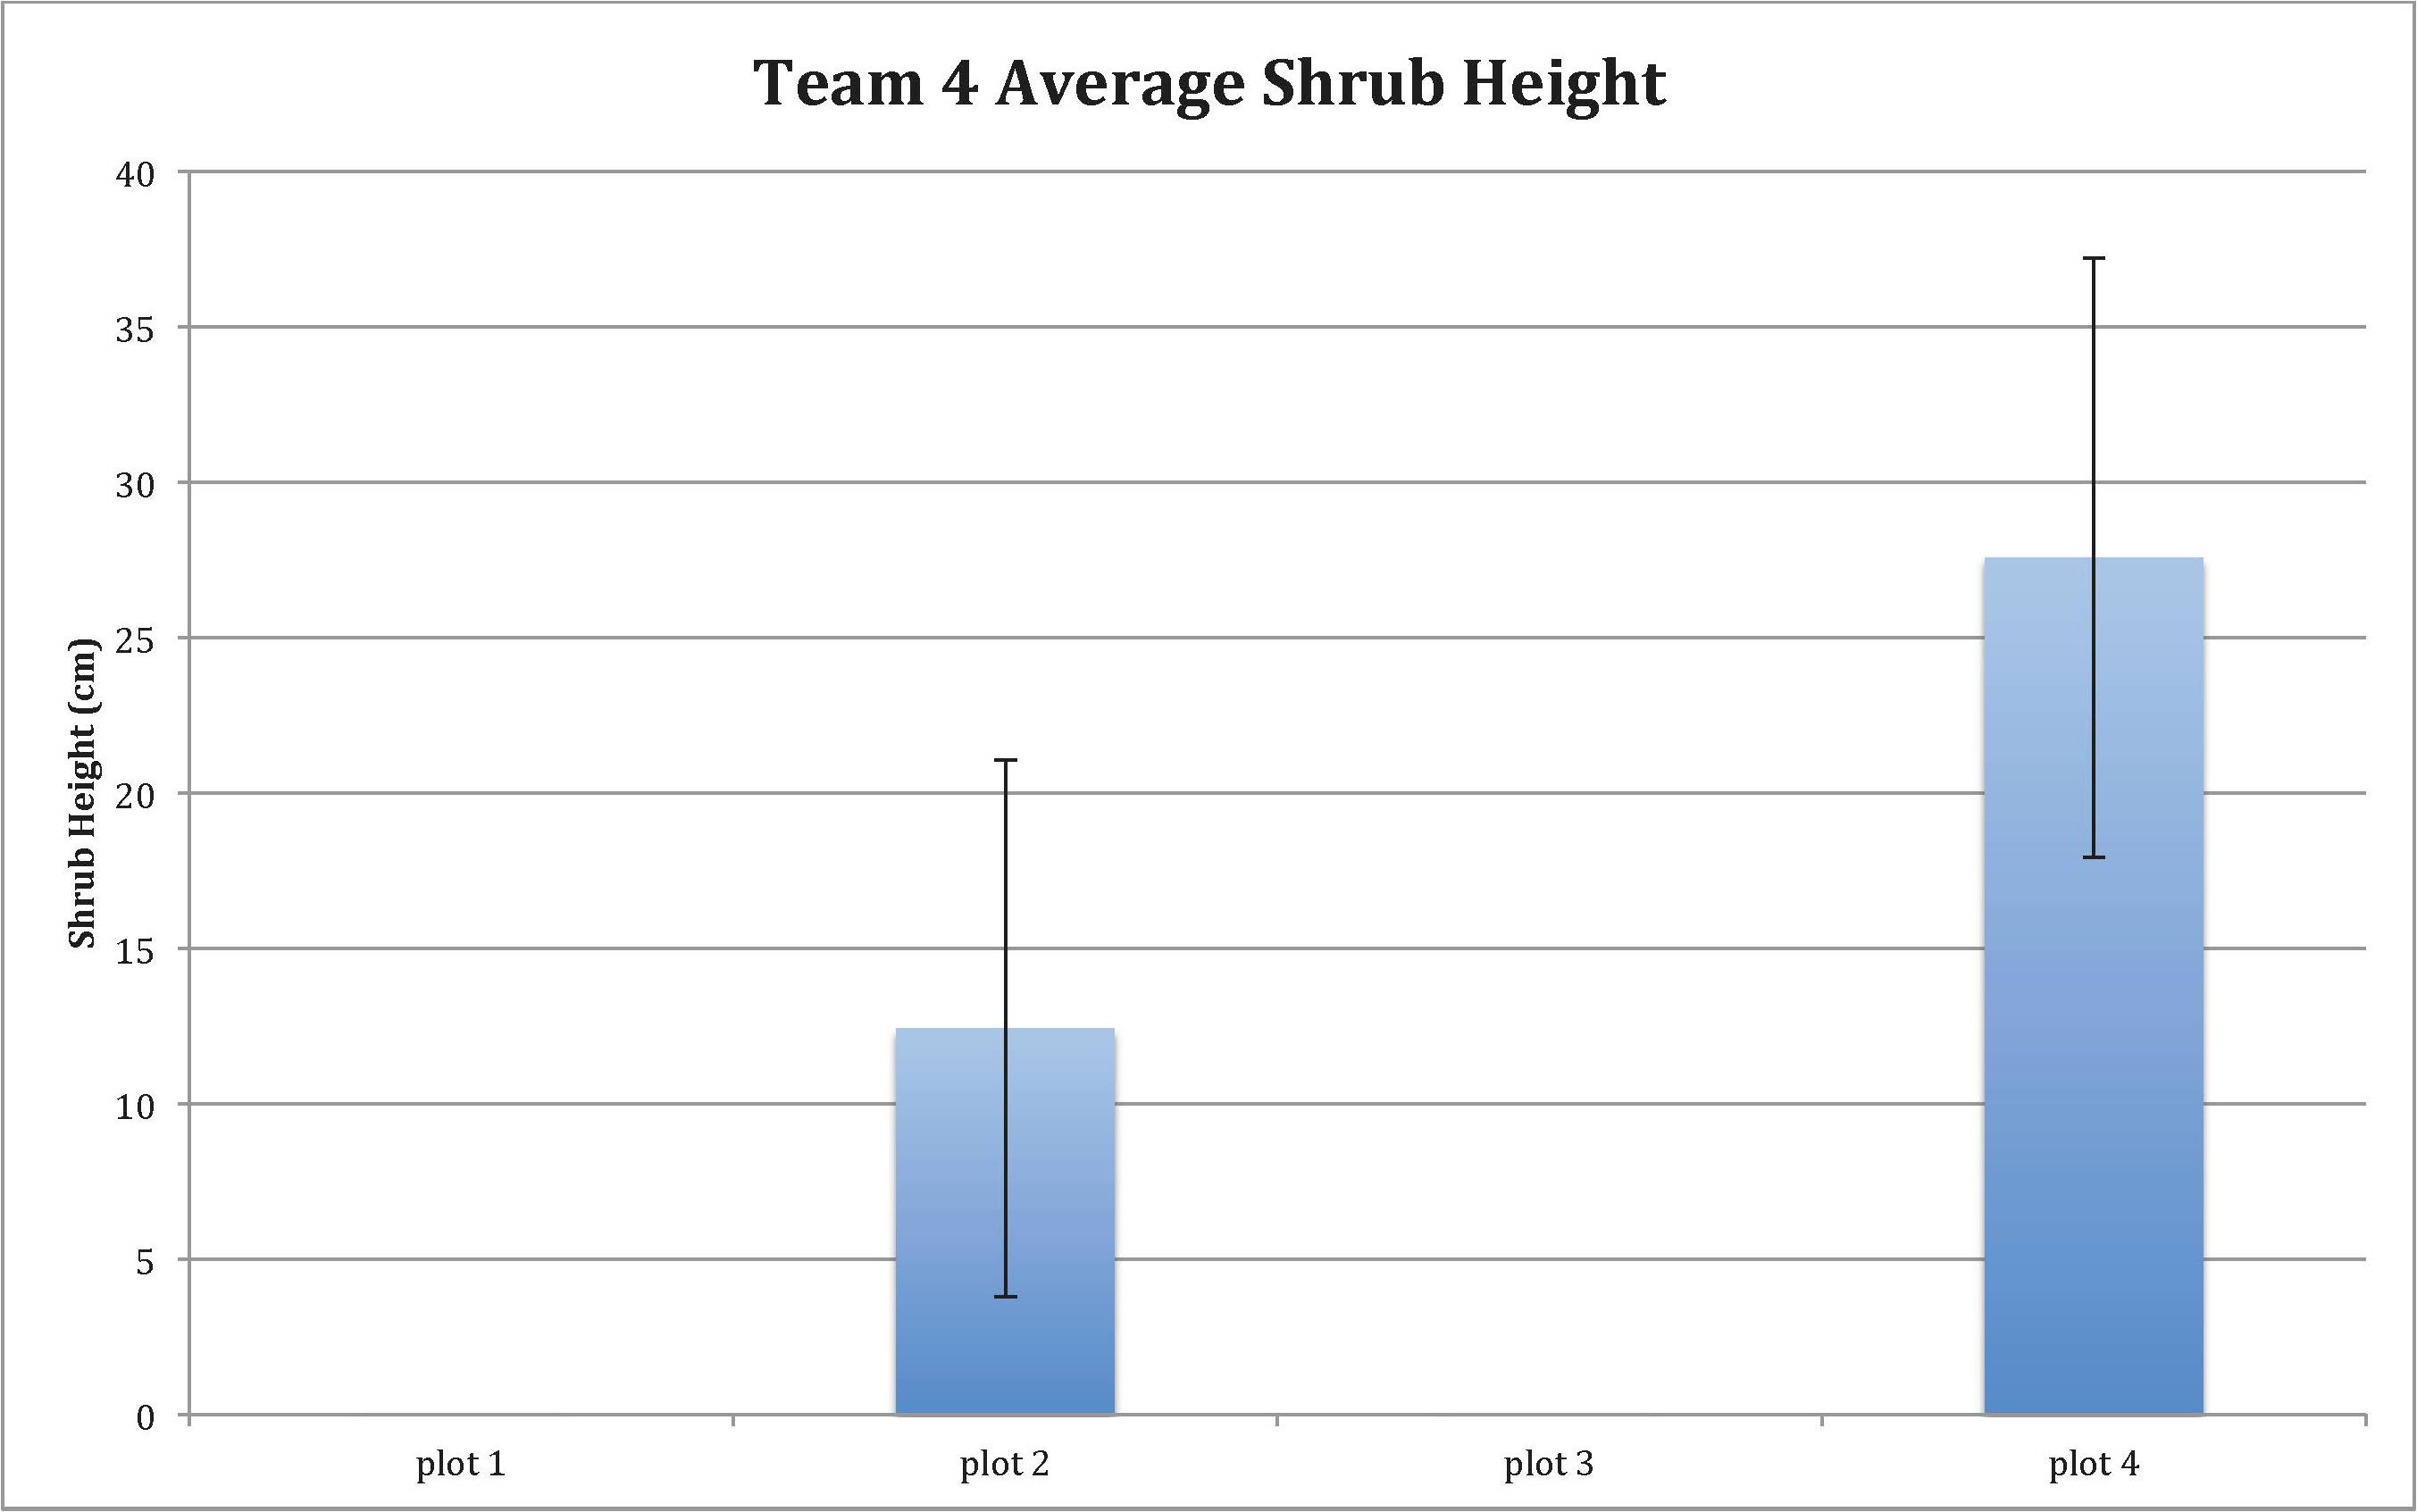 team 4 average shrub height